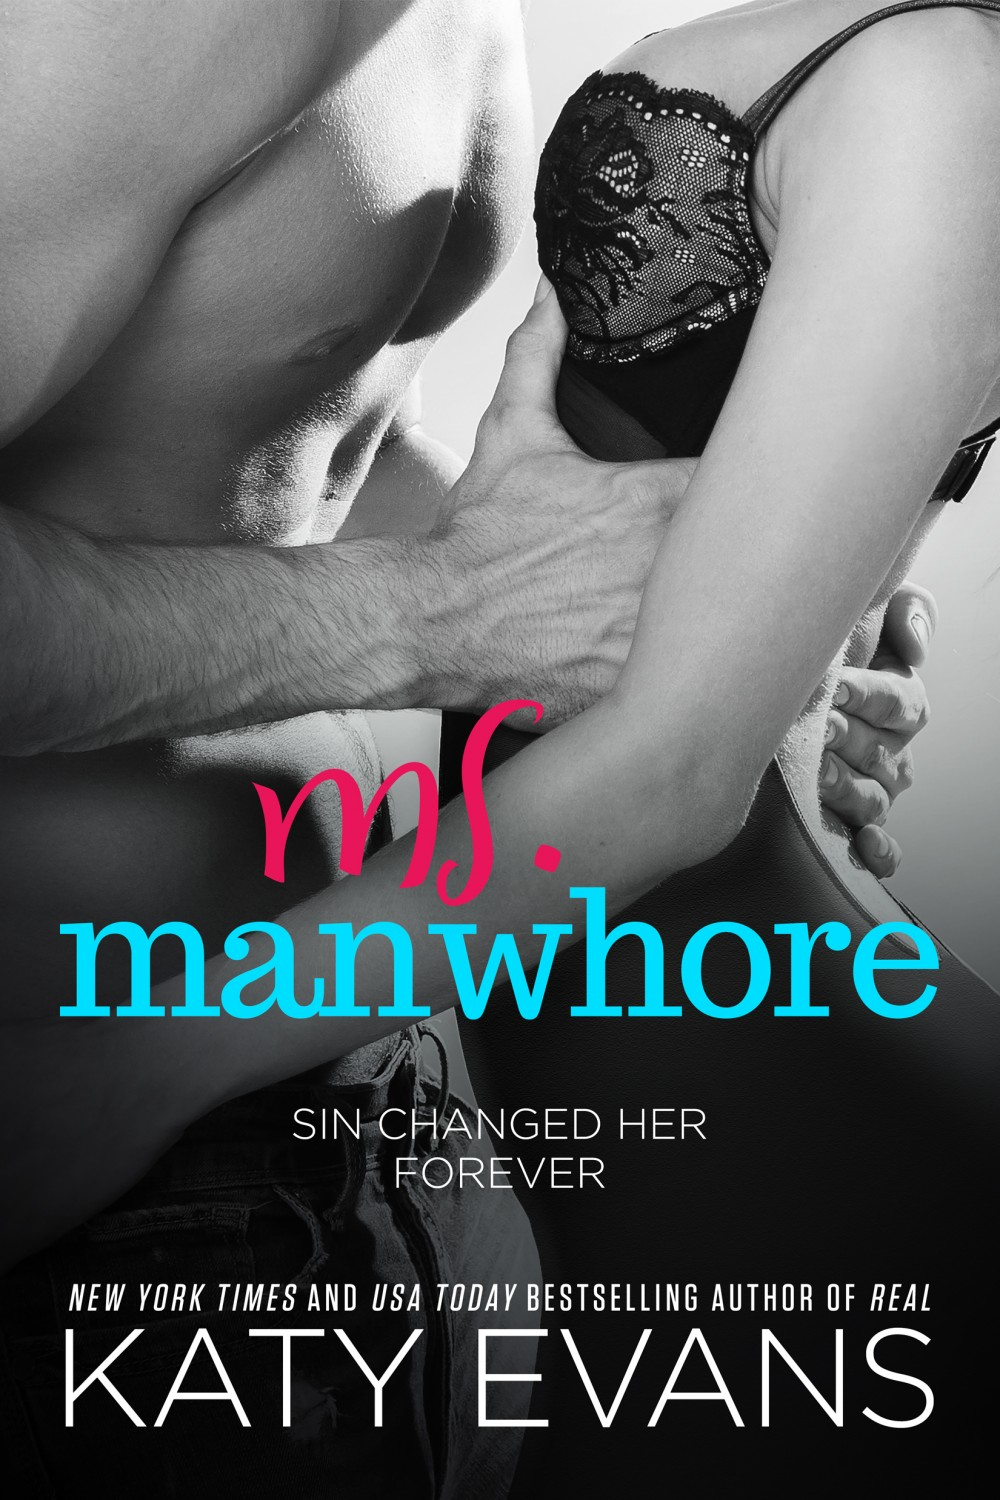 ms-manwhore-final